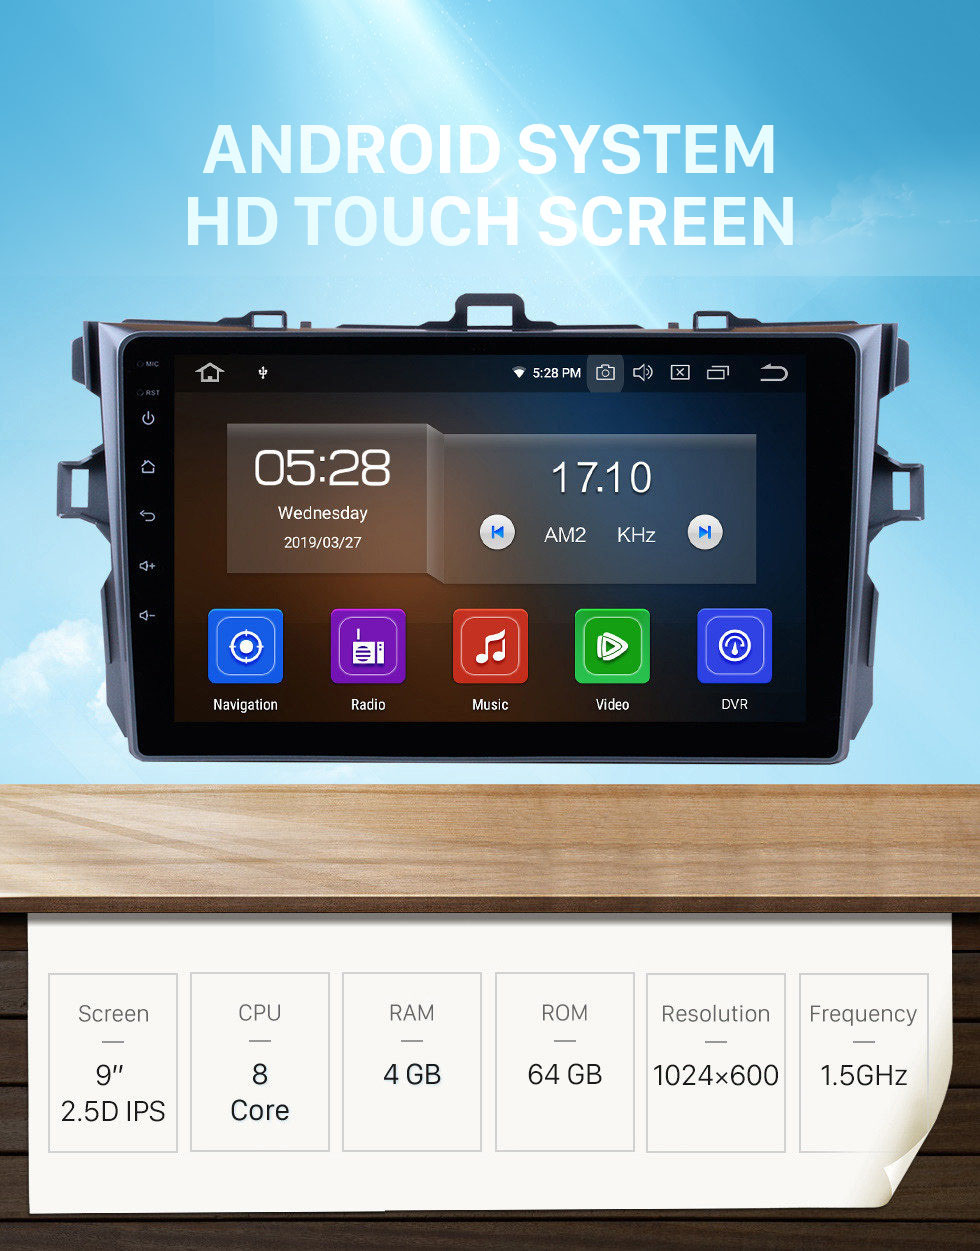 Seicane 9 inch Android 10.0 GPS navigation system for 2006-2011 Toyota COROLLA with Bluetooth Radio HD 1024*600 touch screen OBD2 DVR TV 1080P Video 3G WIFI  Steering Wheel Control  USB SD backup camera  Quad-core CPU Mirror link